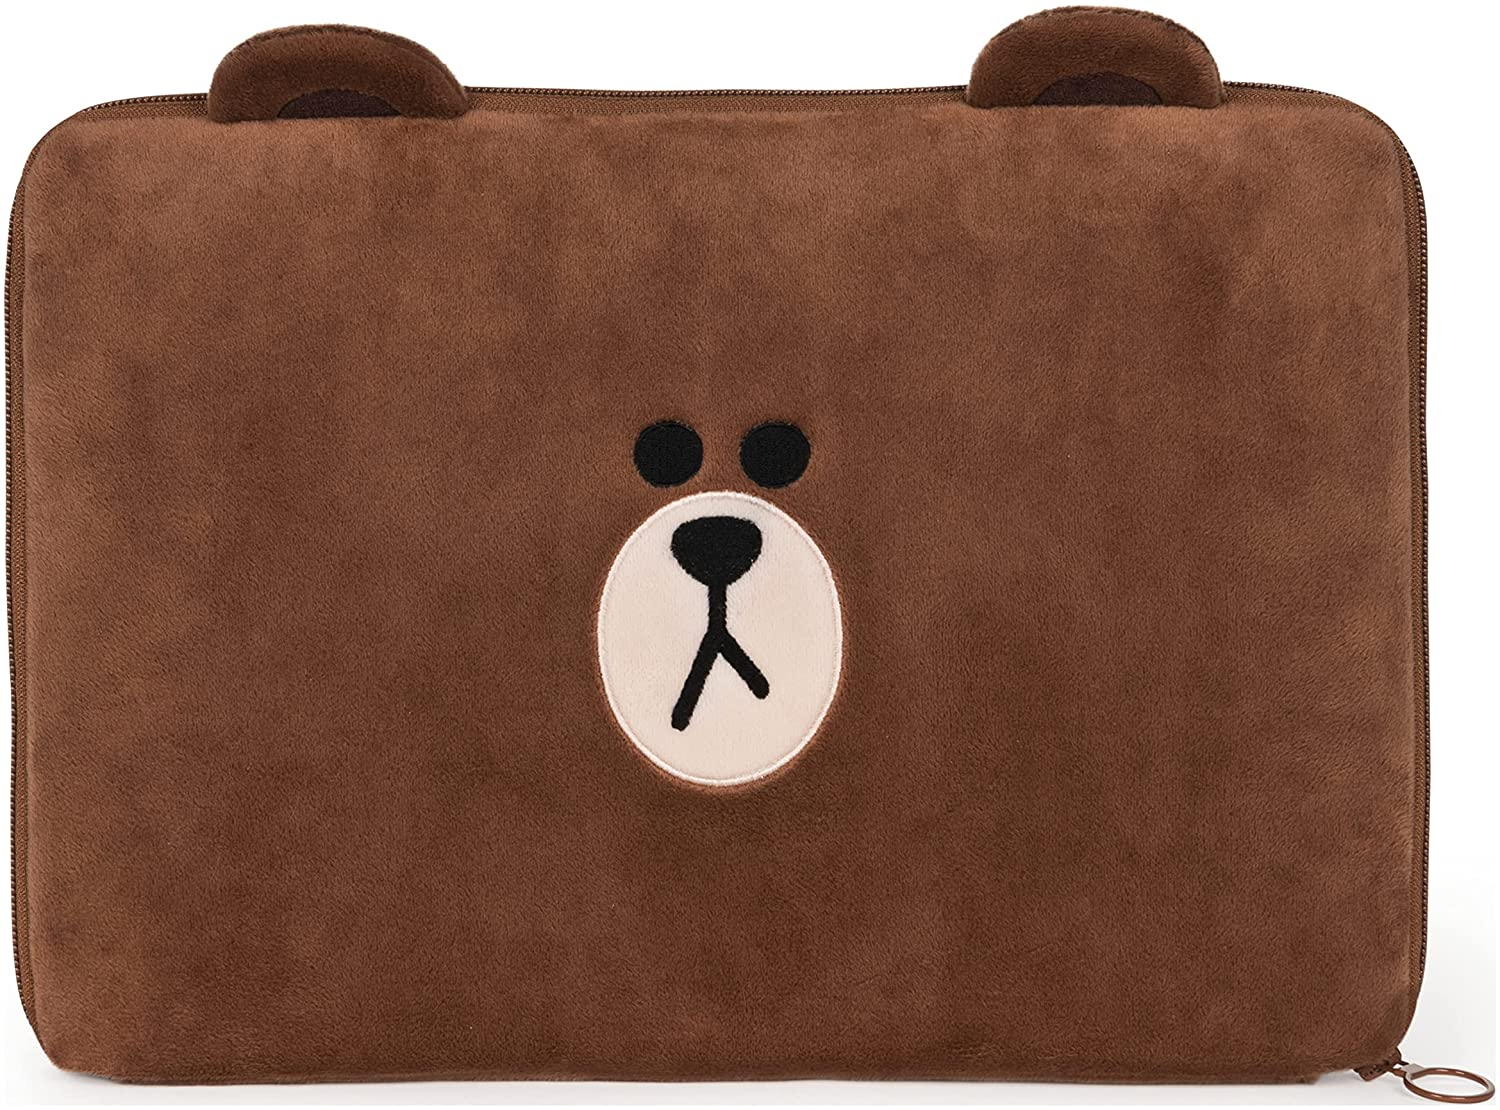 """GUND LINE Friends Brown Zippered Laptop Case Plush for Ages 3&Up, 10.5""""H x 15""""W"""